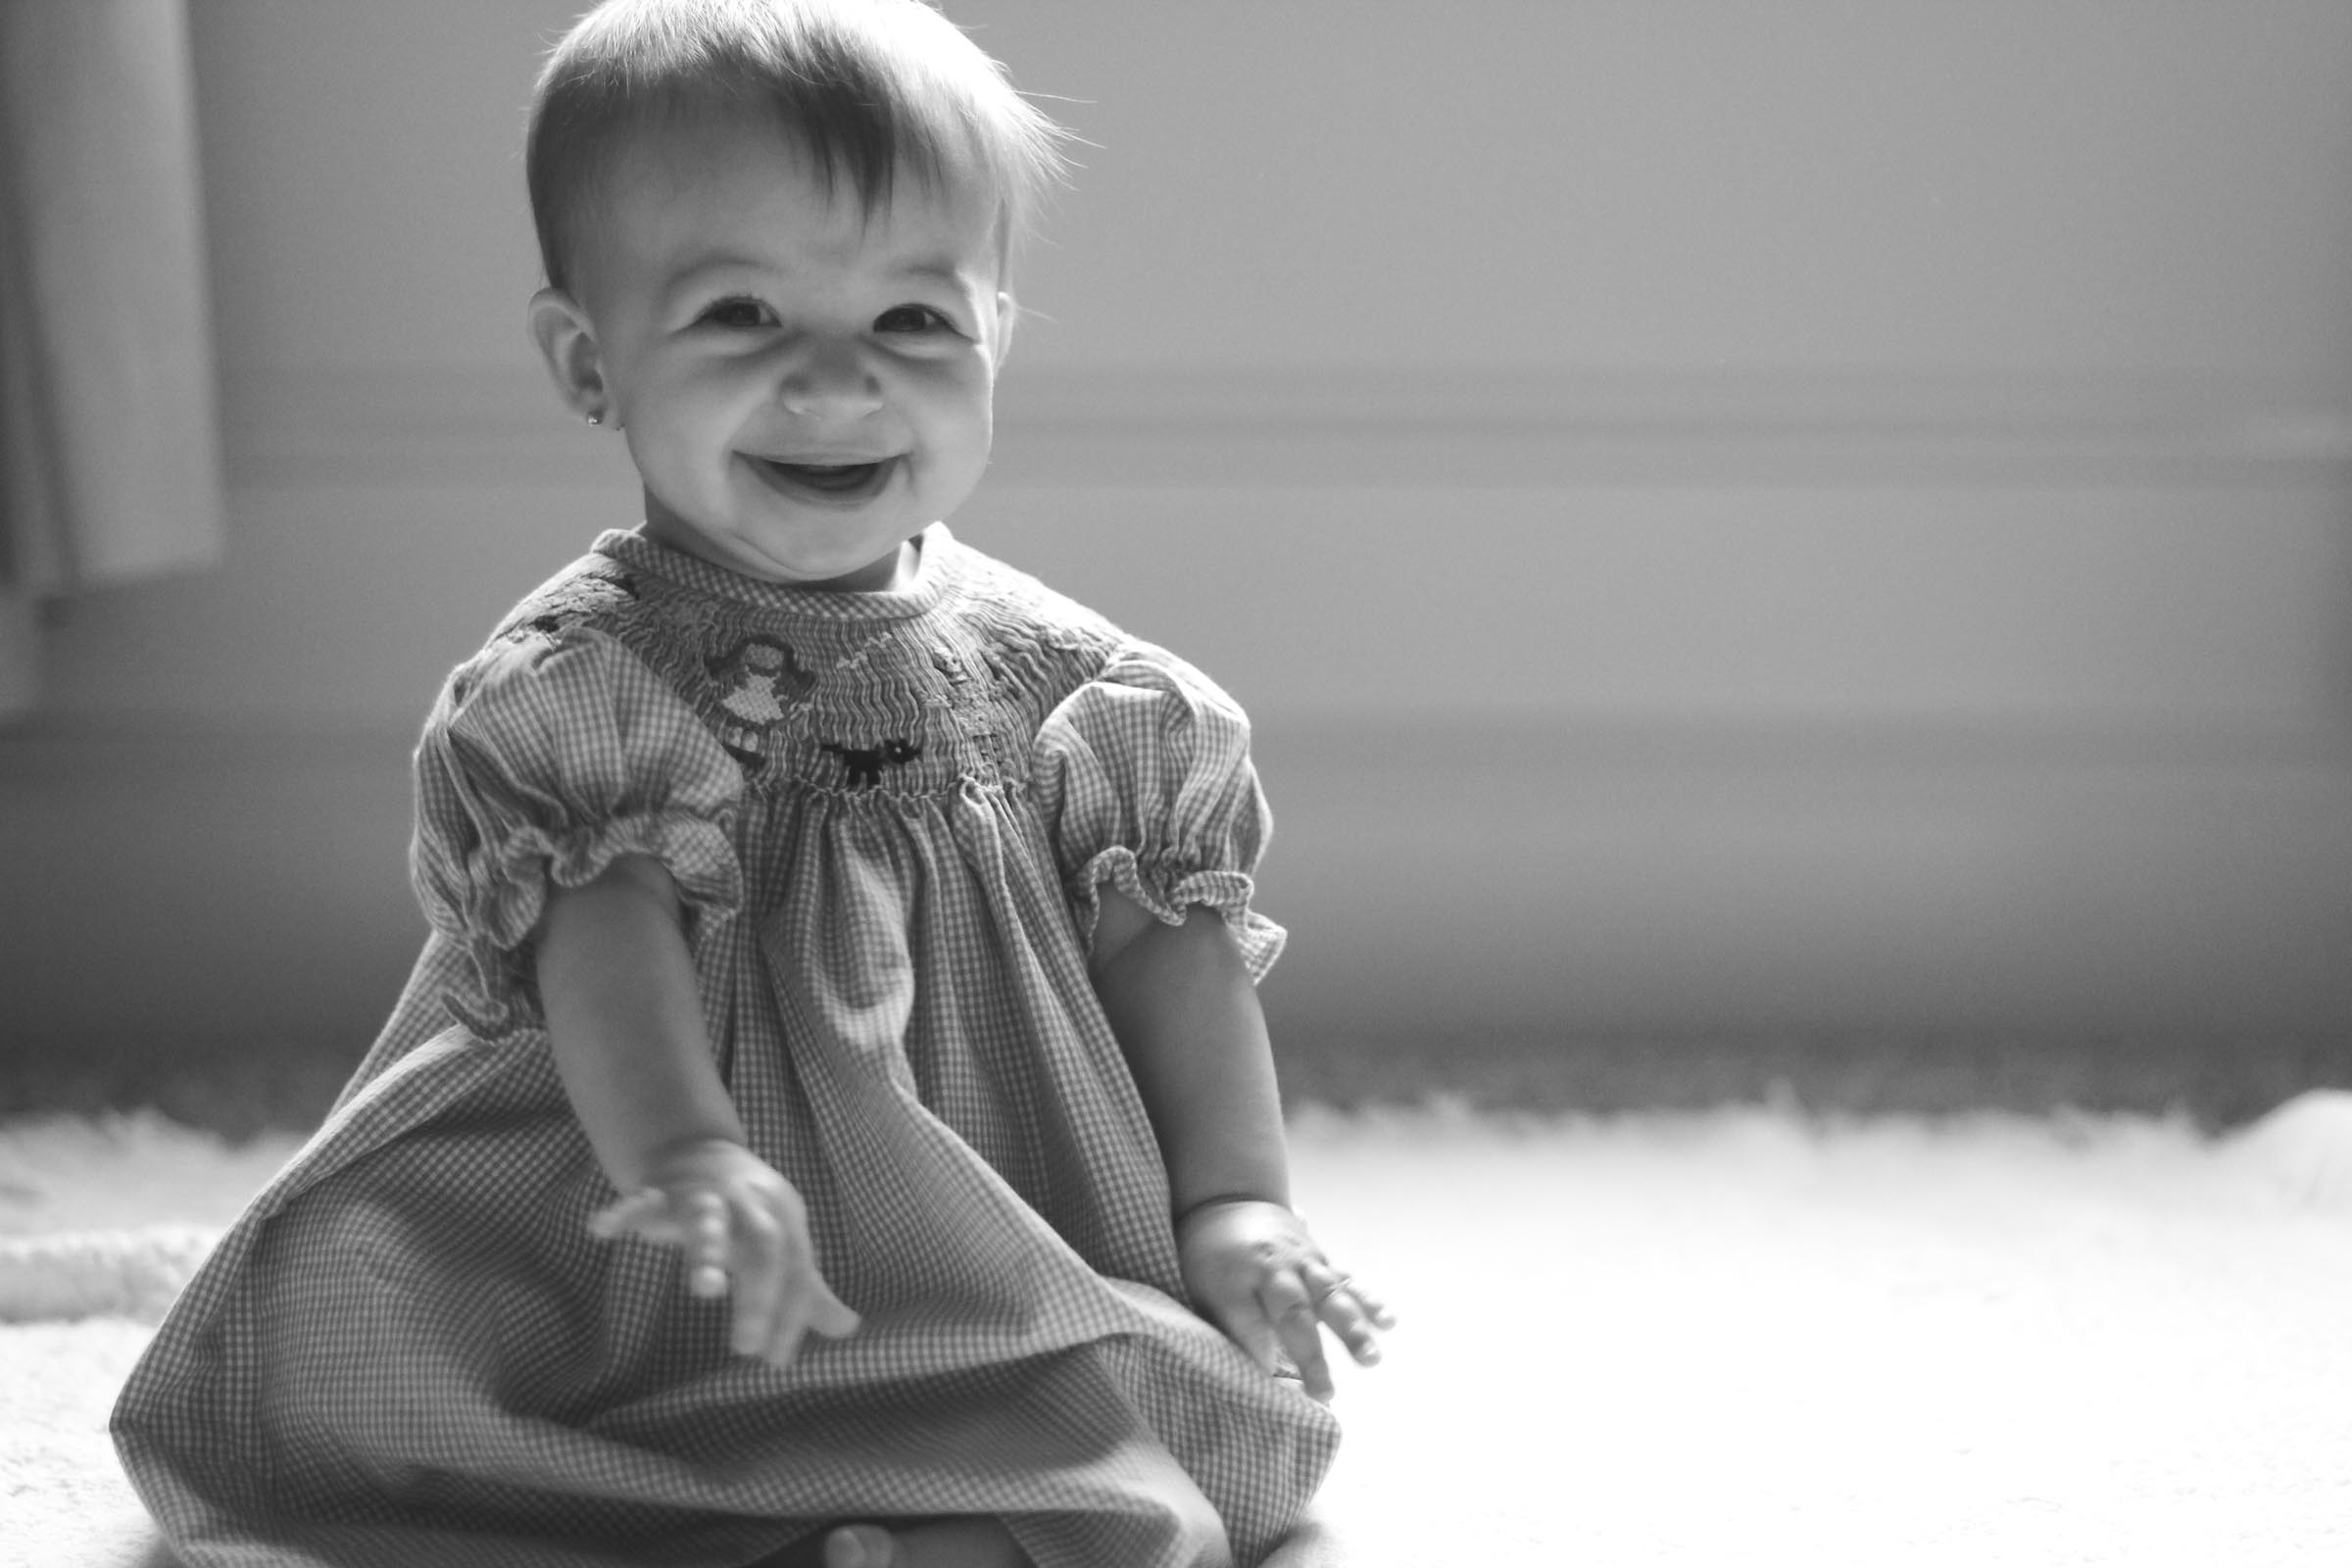 ashley-landry-photography-raymond-09-2016-17-of-41